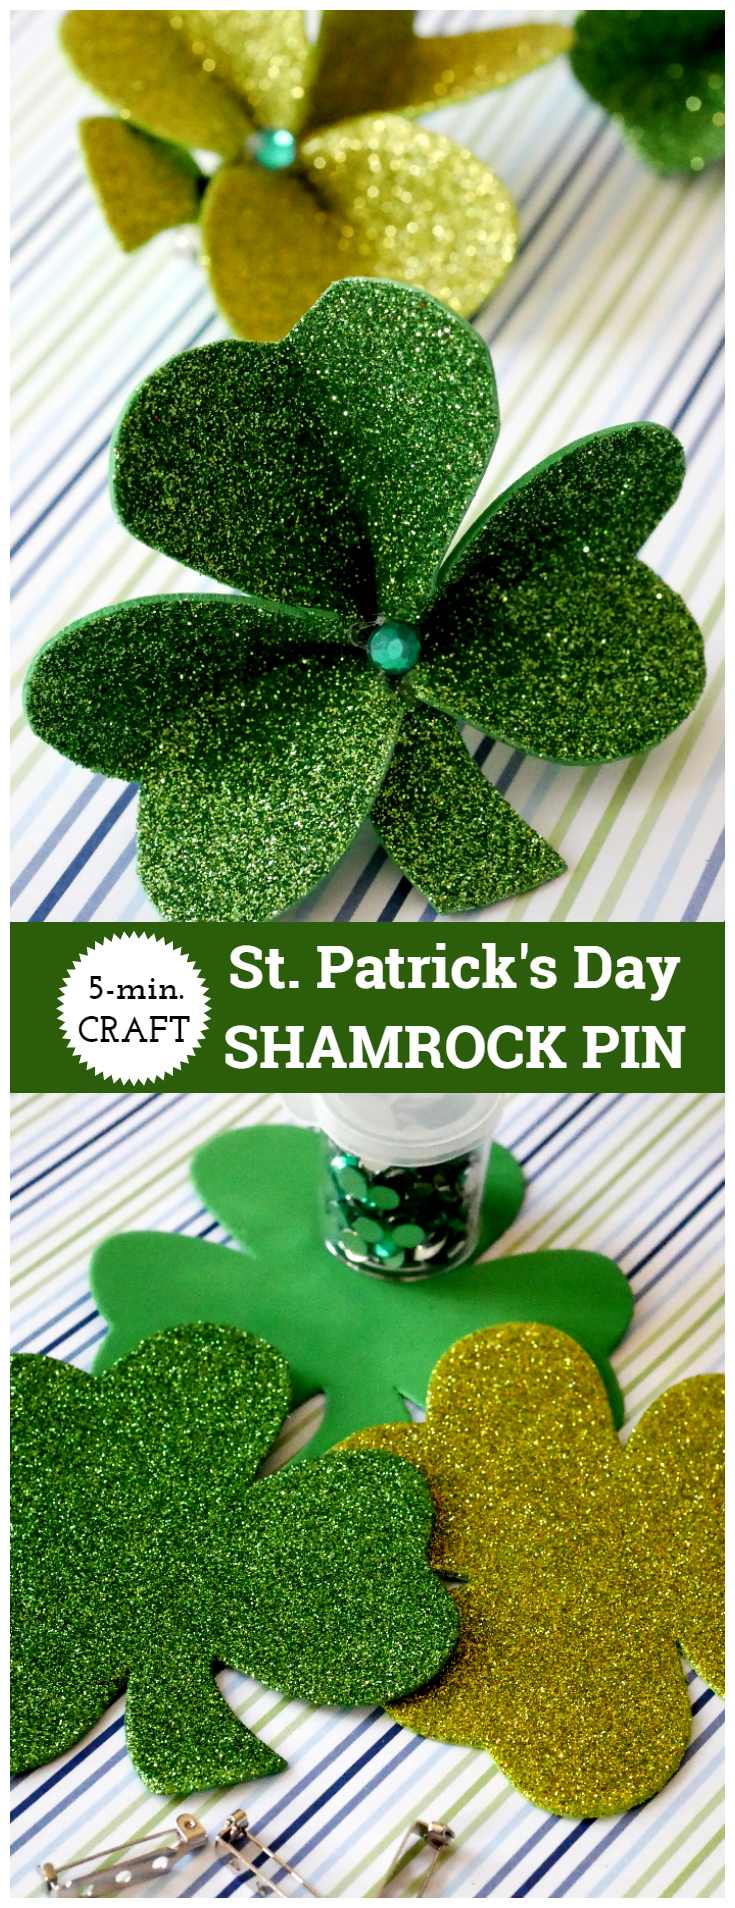 St. Patrick's Day Shamrock Pin made from Dollar Tree foam shamrocks, bar pin, and gems. Easy 5-minute craft